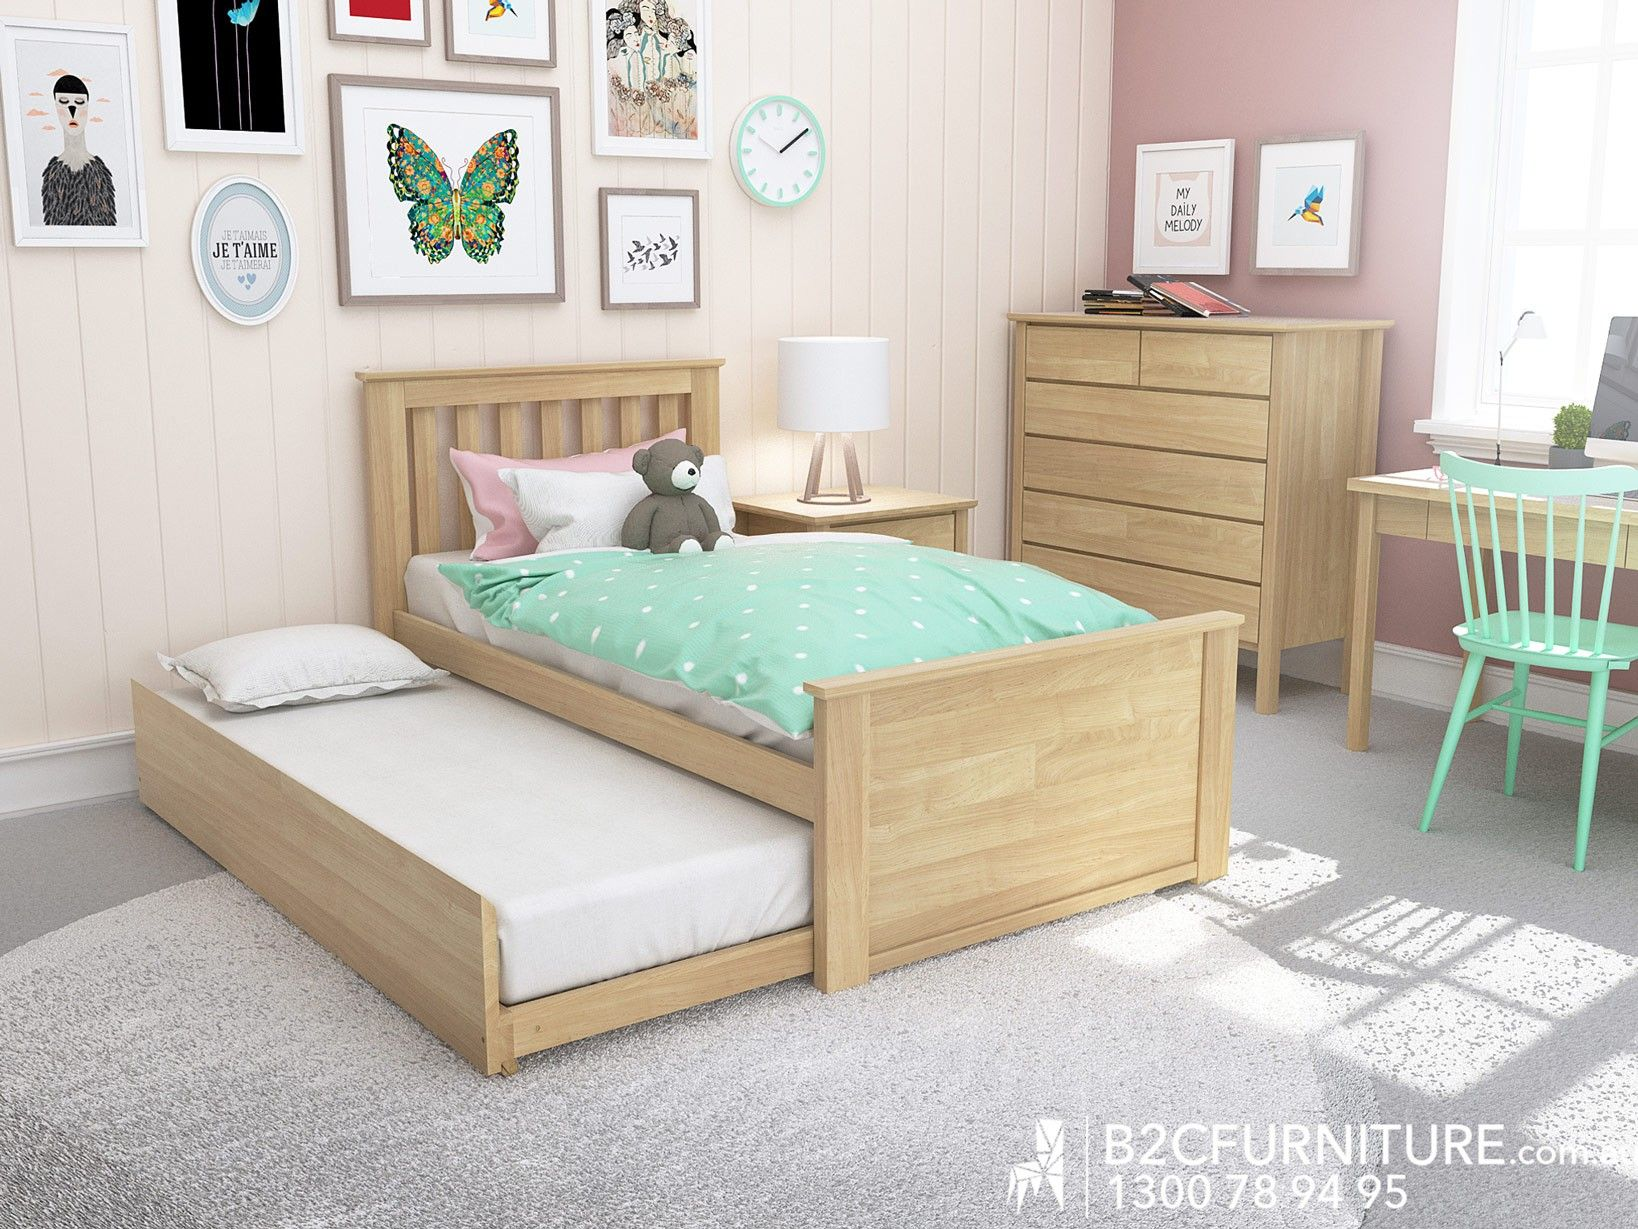 youth to bedroom furniture white bunkbed bed lease better product appliances from own m beds photo electronics computers and trundle lulu